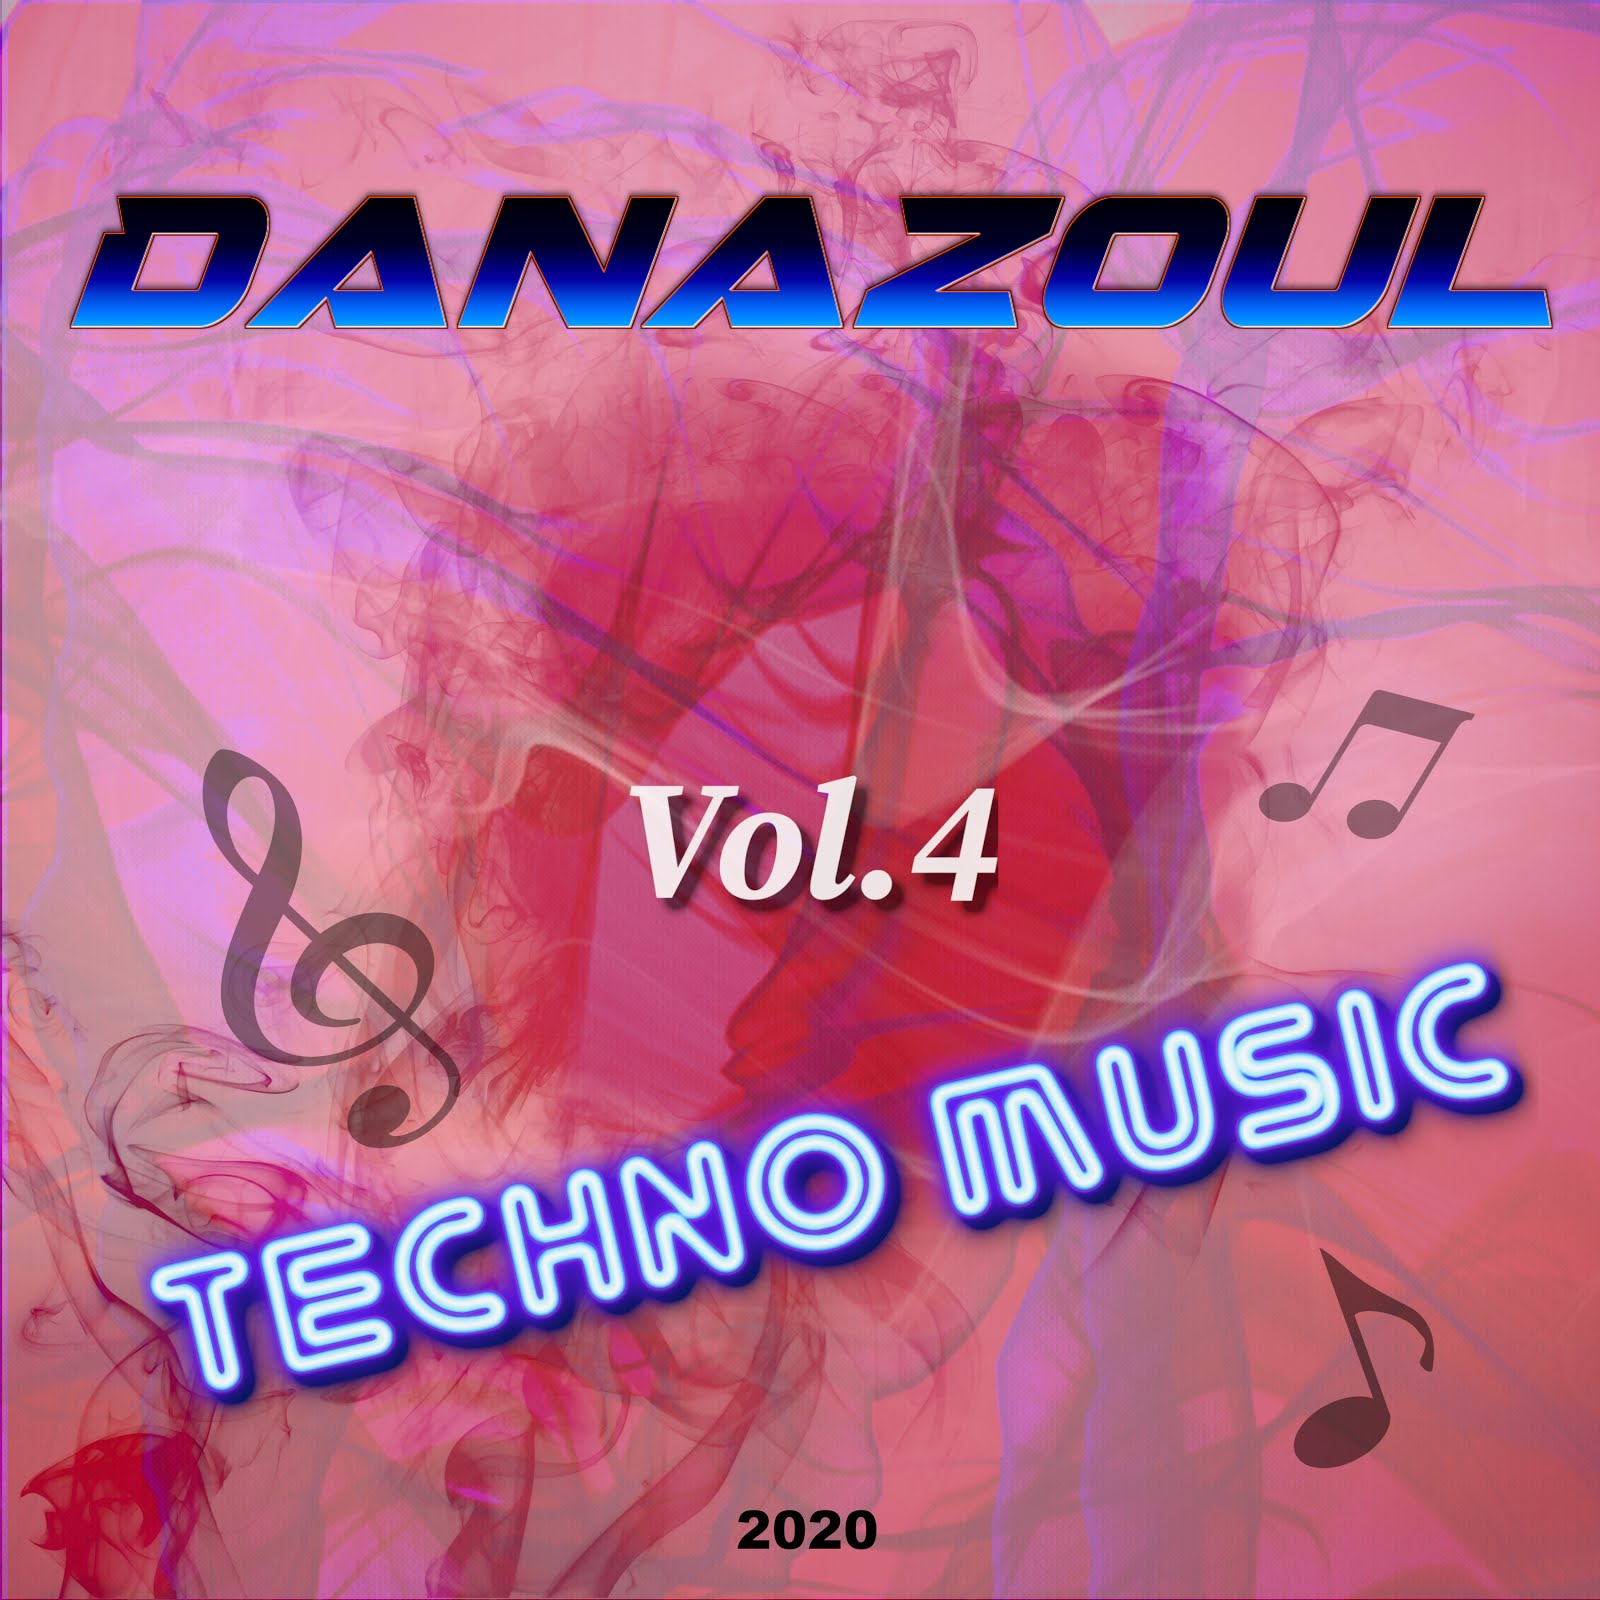 Techno Music Vol.4